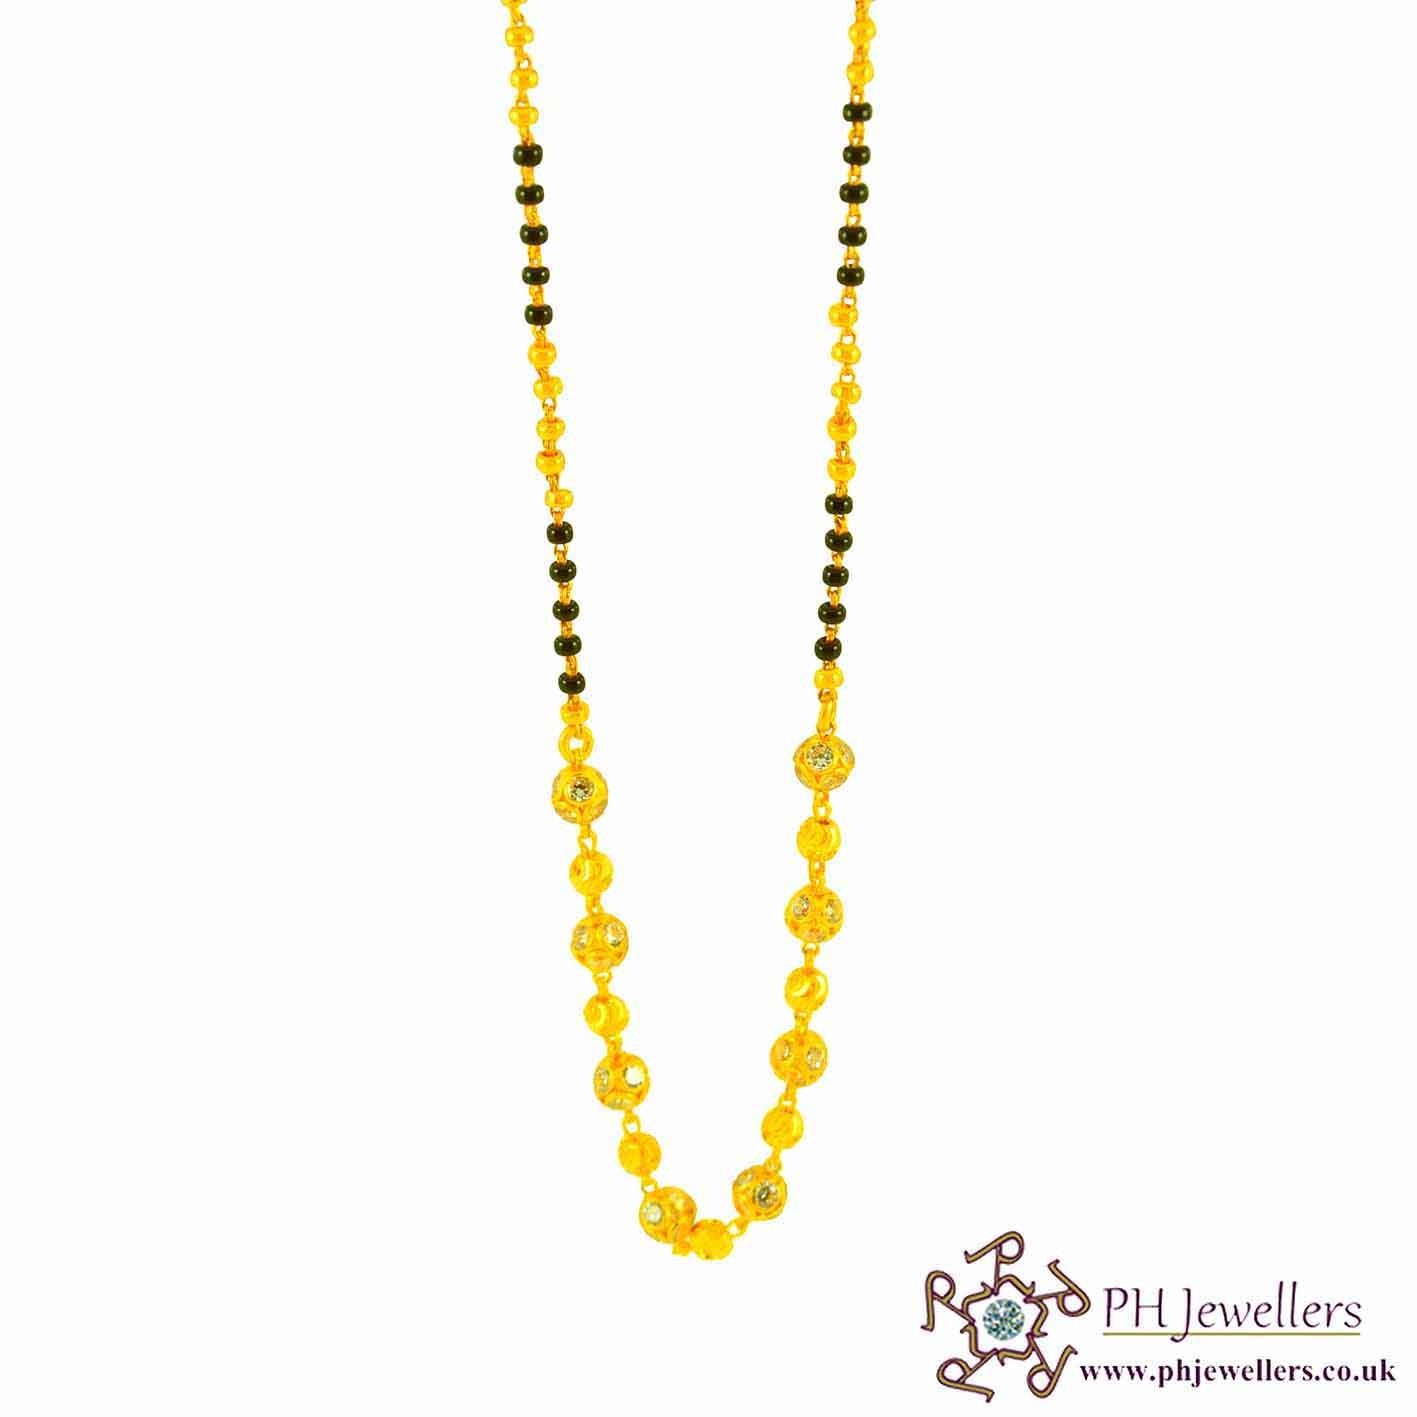 22ct 916 Hallmark Yellow Gold Black Bead Chain Mangalsutra MS2